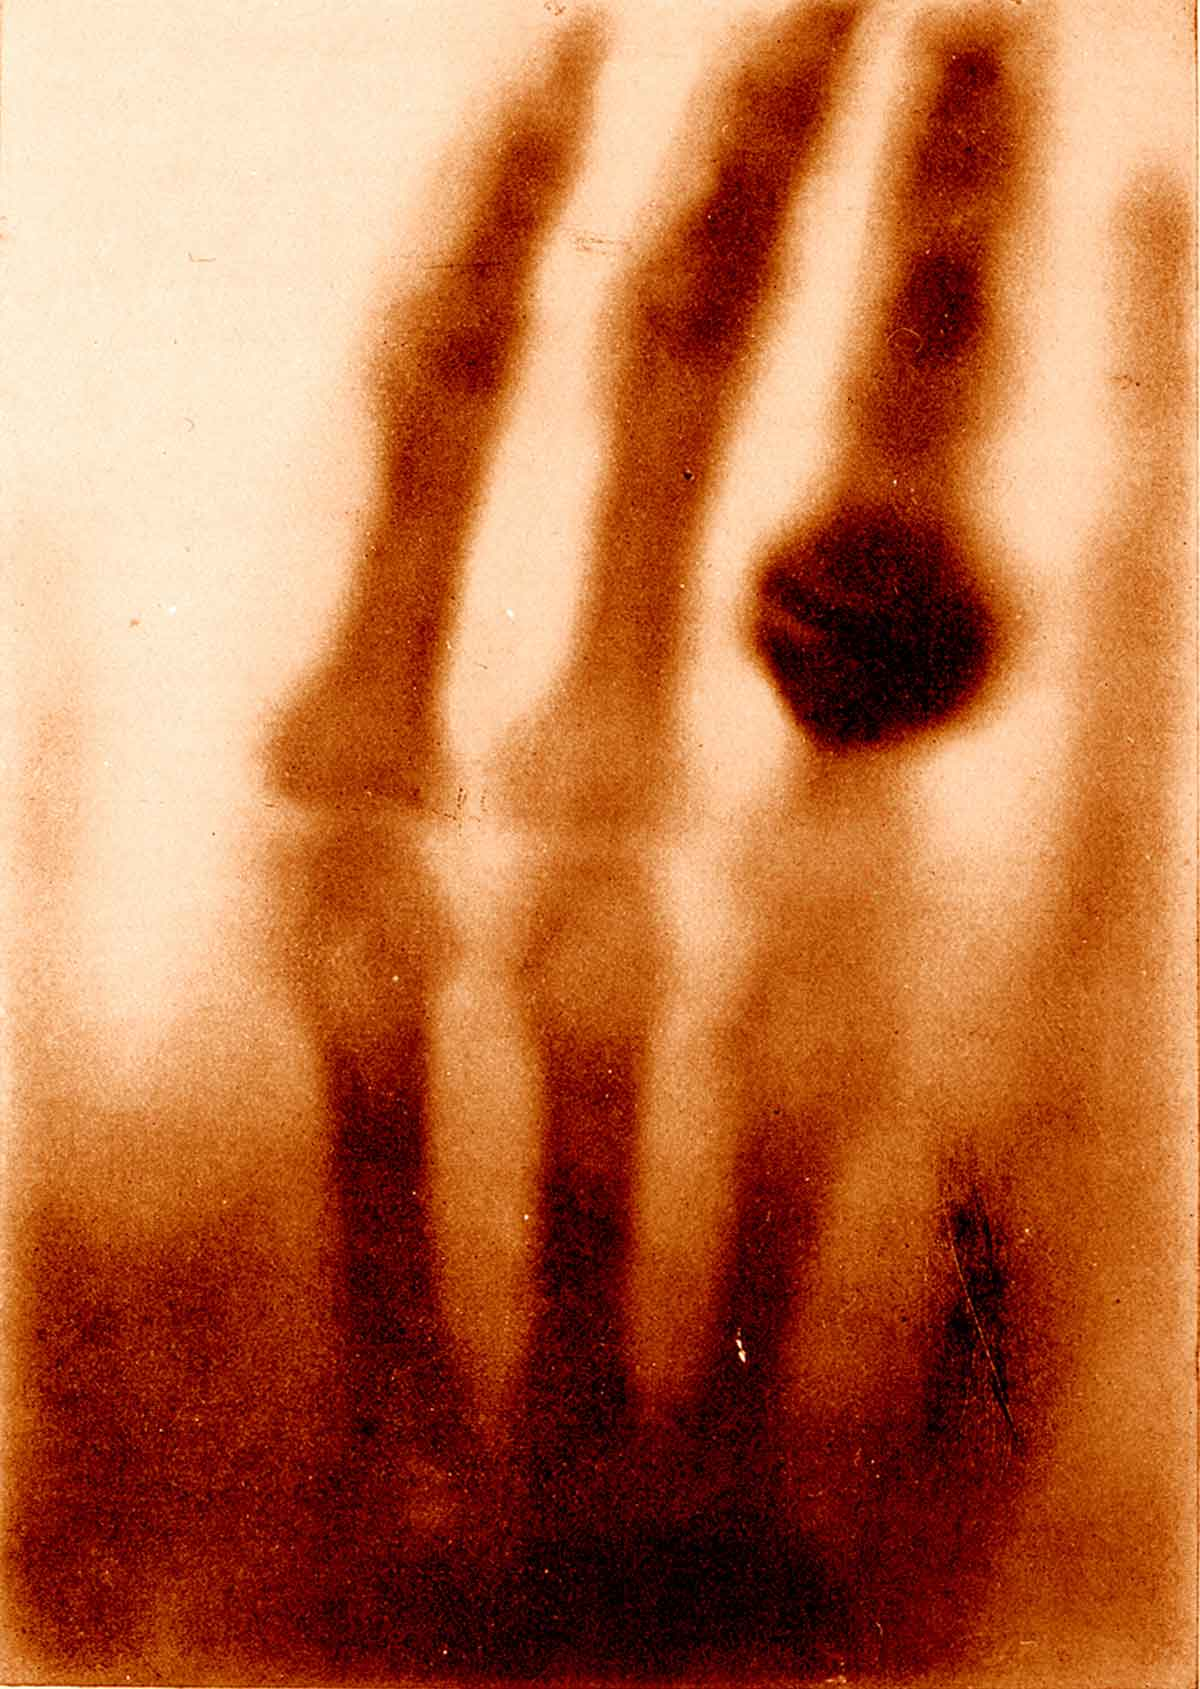 Wilhelm Conrad Roentgen discovers x-rays. This discovery is thought of as one of the greatest technological accomplishments of all time. It made a huge impact on cancer detection and treatment.Four years later (1899) Tage Anton Ultimus Sjogren successfully treats cancer with x-rays.11. Morton, Leslie T., and Moore, Robert J. A Chronology of Medicine and Related Sciences. Aldershot, England: Scholar Press, 1997